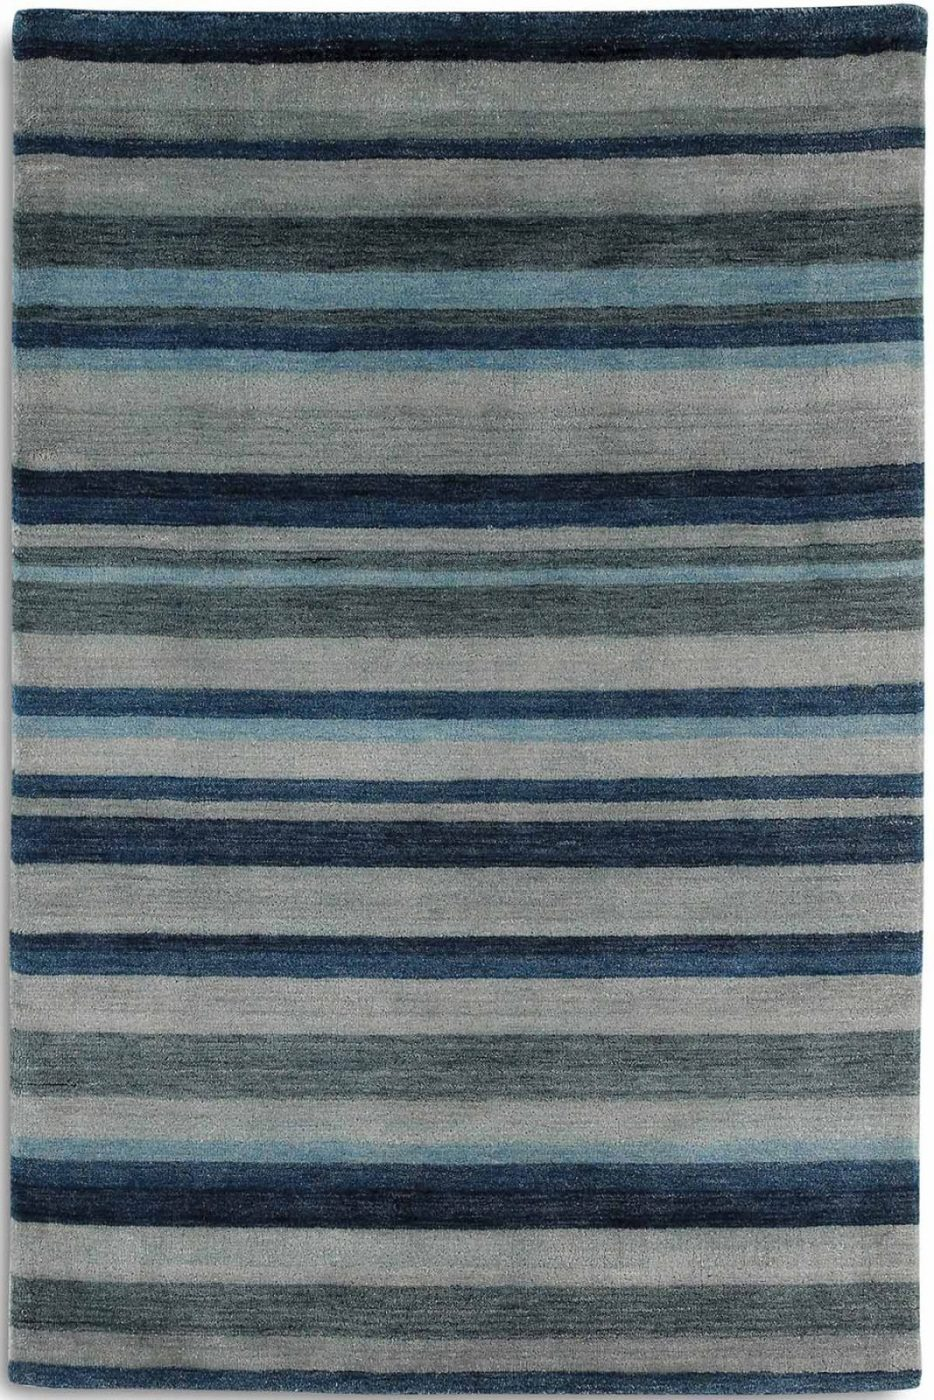 Regatta REG01 | Plantation Rug Company | Best at Flooring